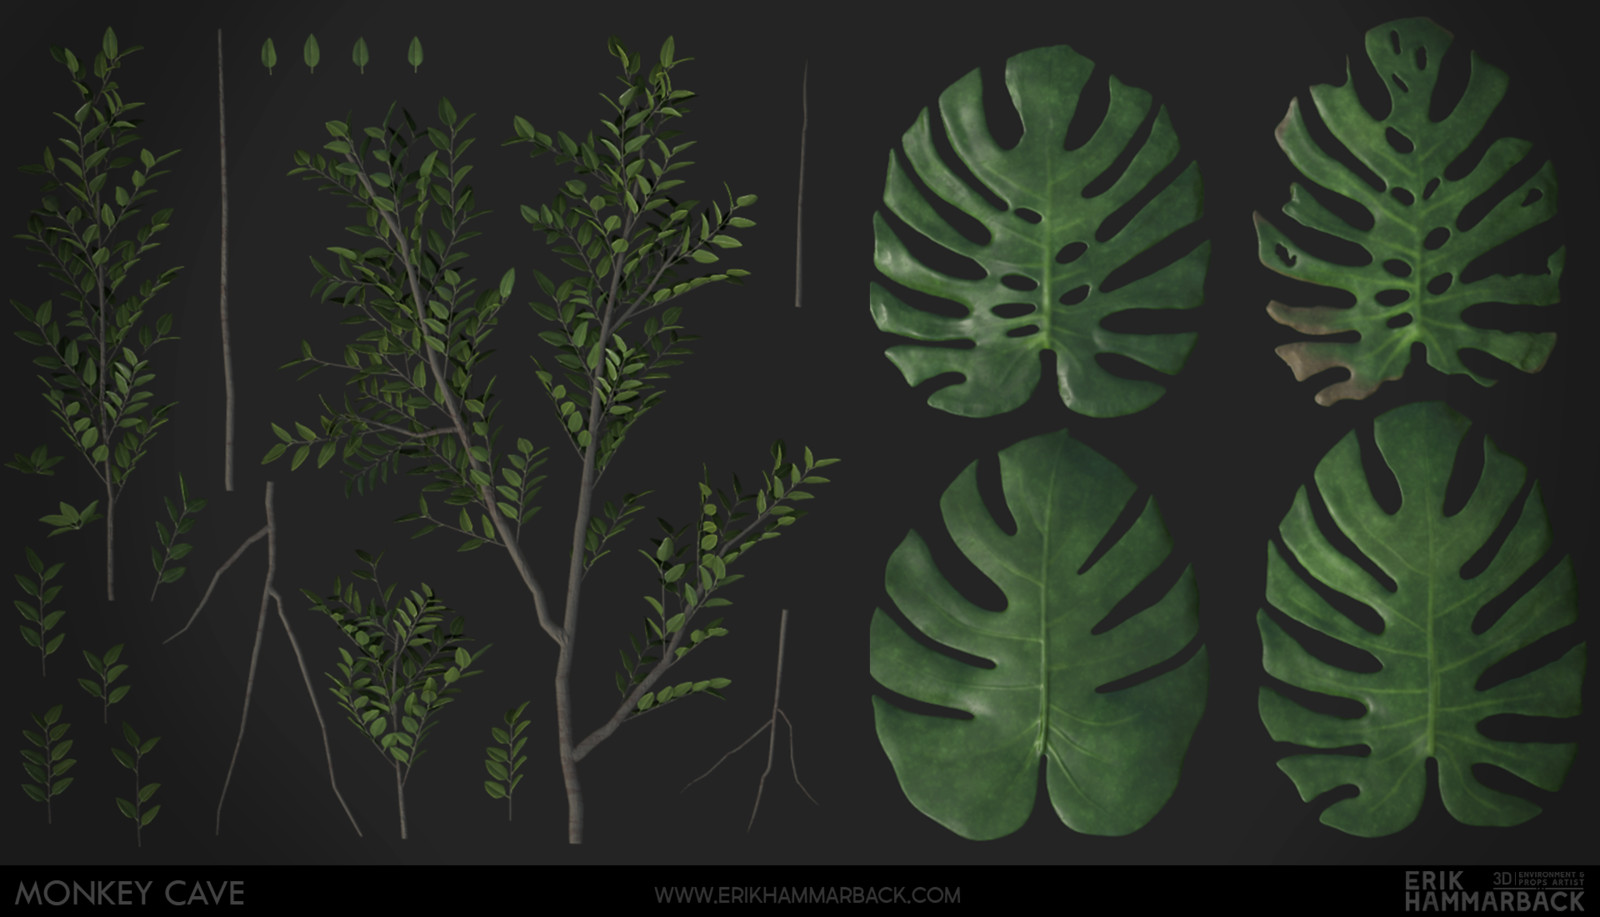 I used Substance Designer to texture the baked down foliage